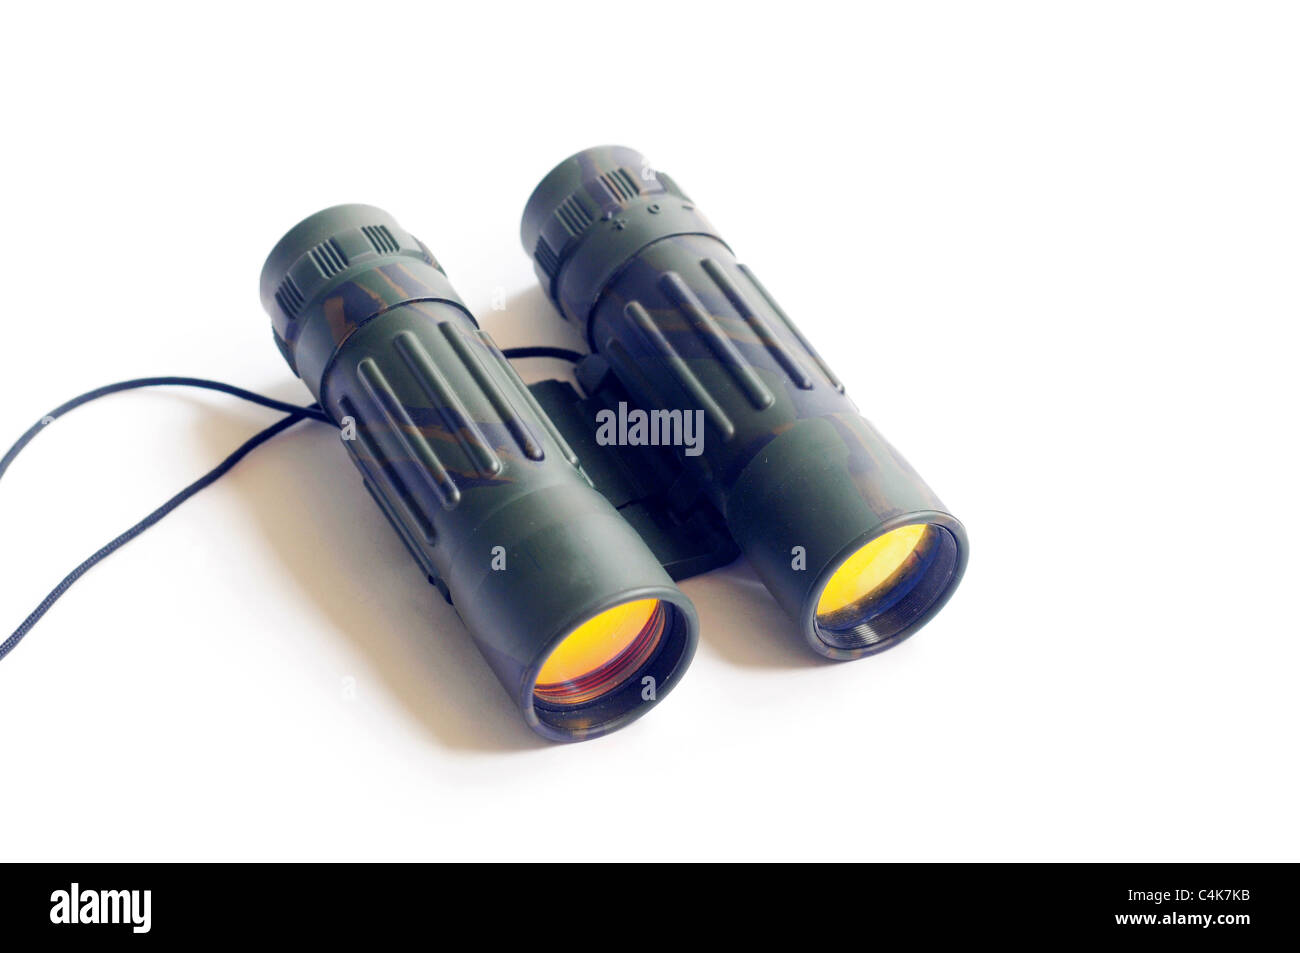 Closeup view of binoculars on a white background - Stock Image